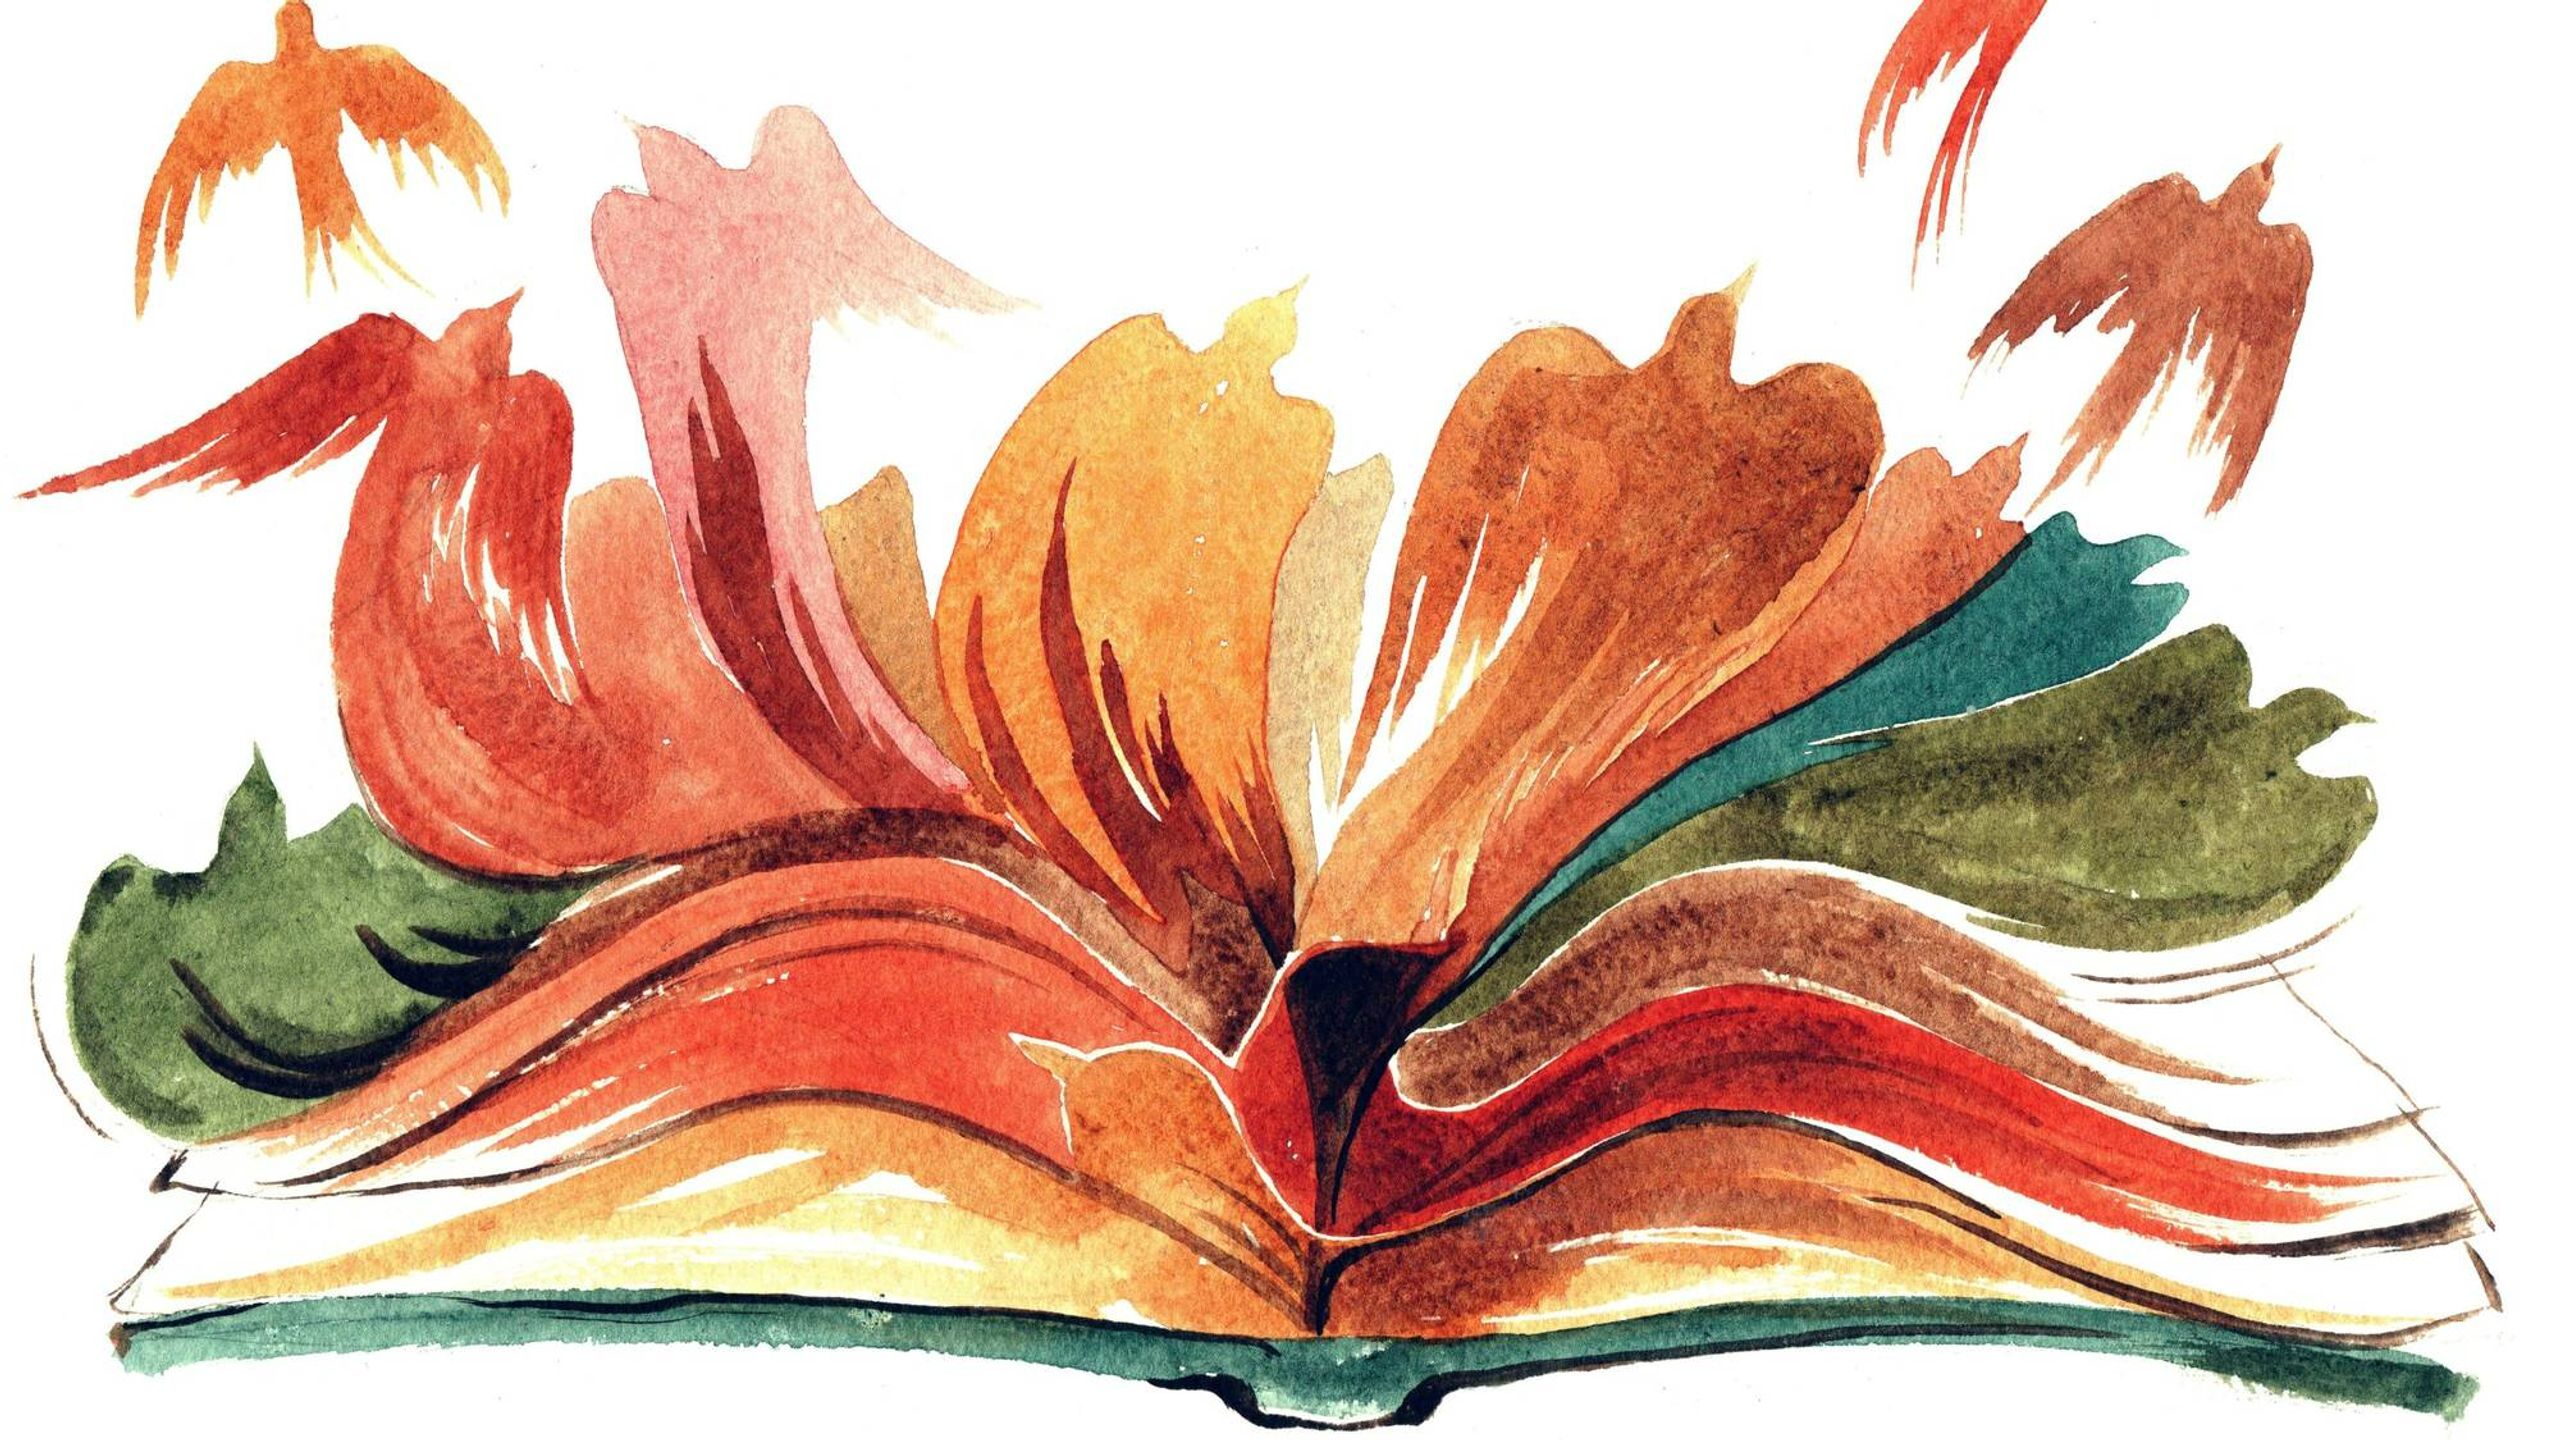 Illustration of a colorful open book with birds flying out of the pages